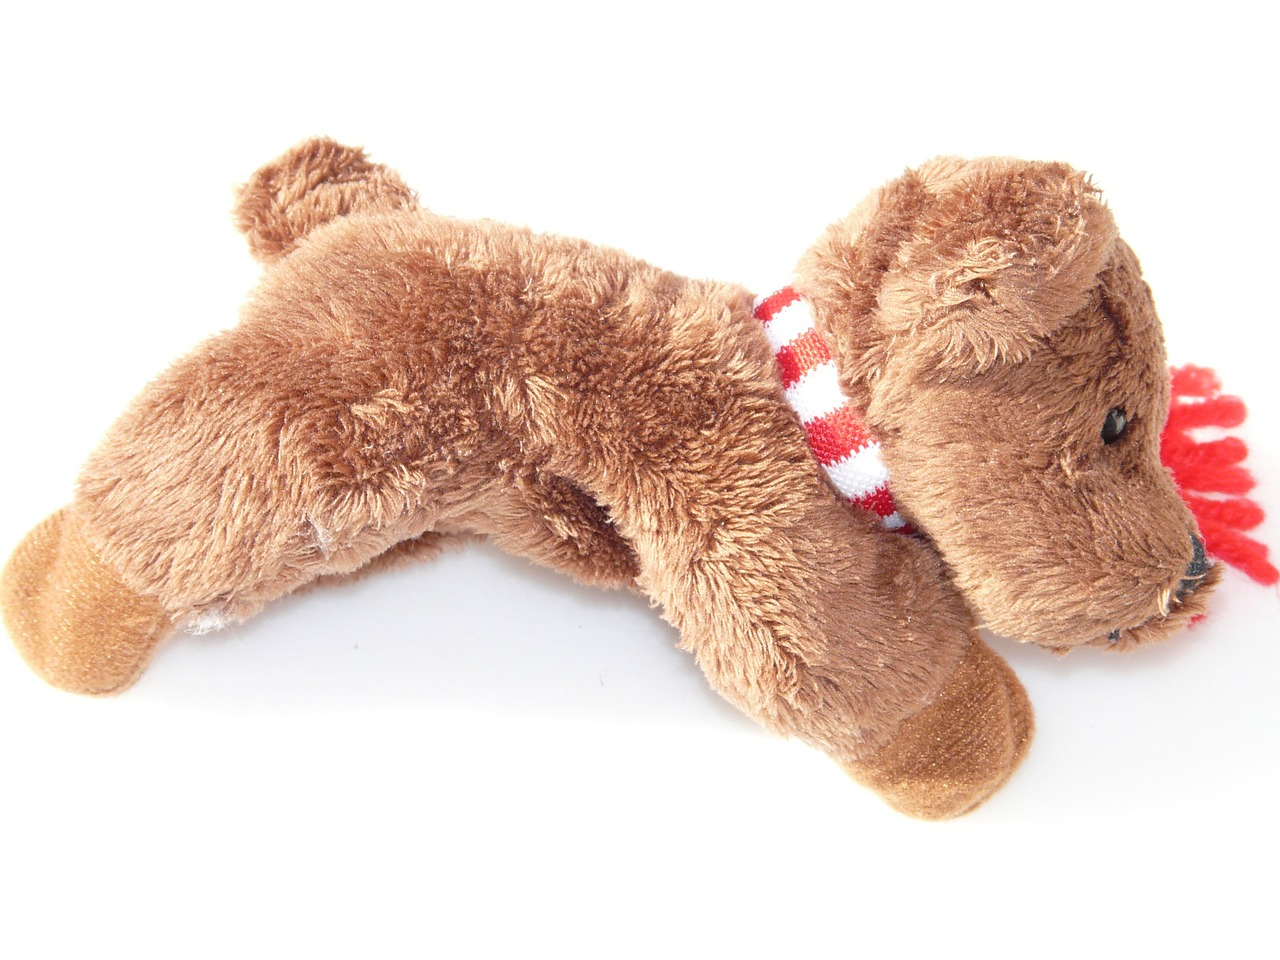 plush dog soft toy animal free photo